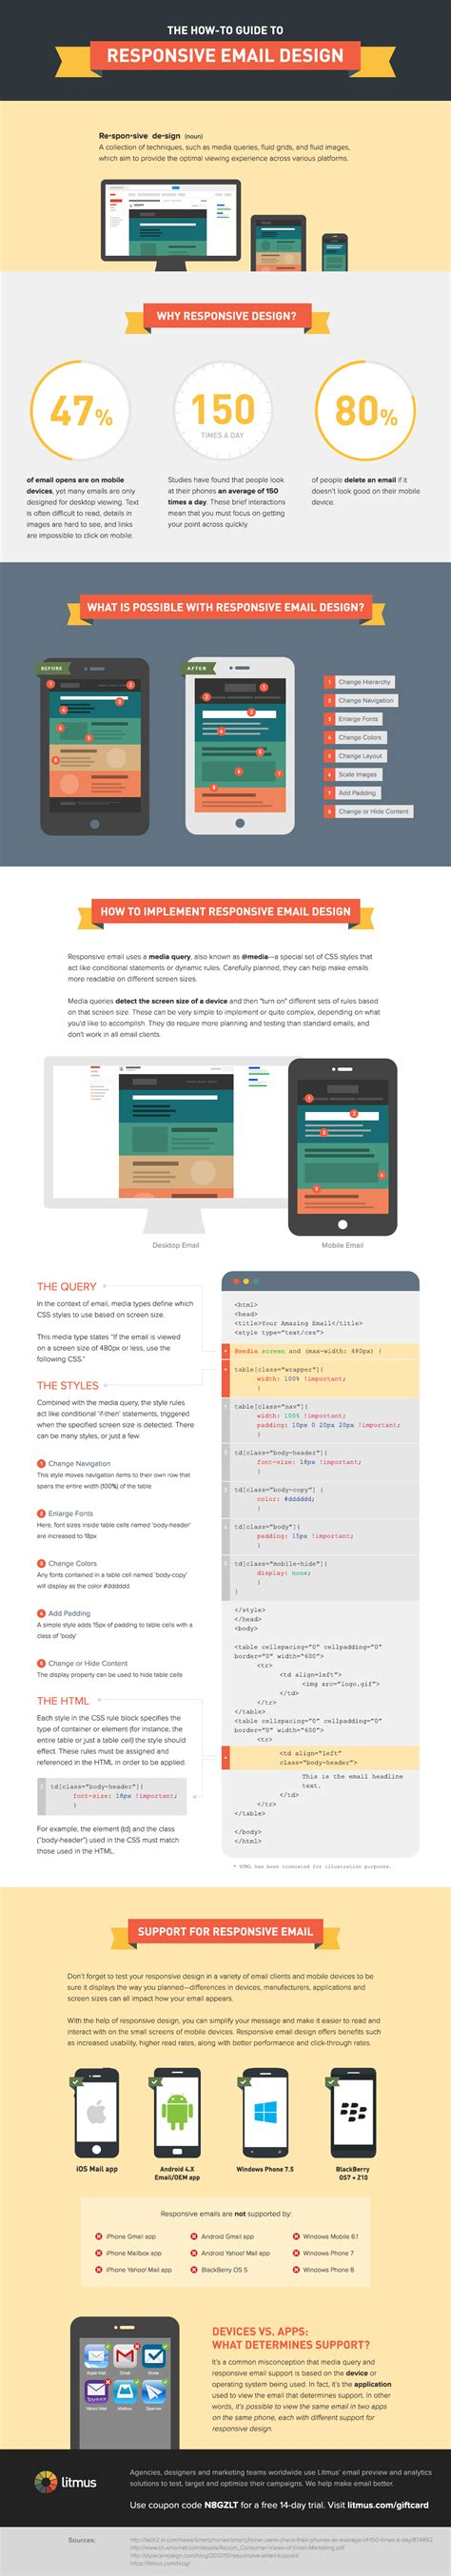 email design the how to guide to responsive email design litmus blog